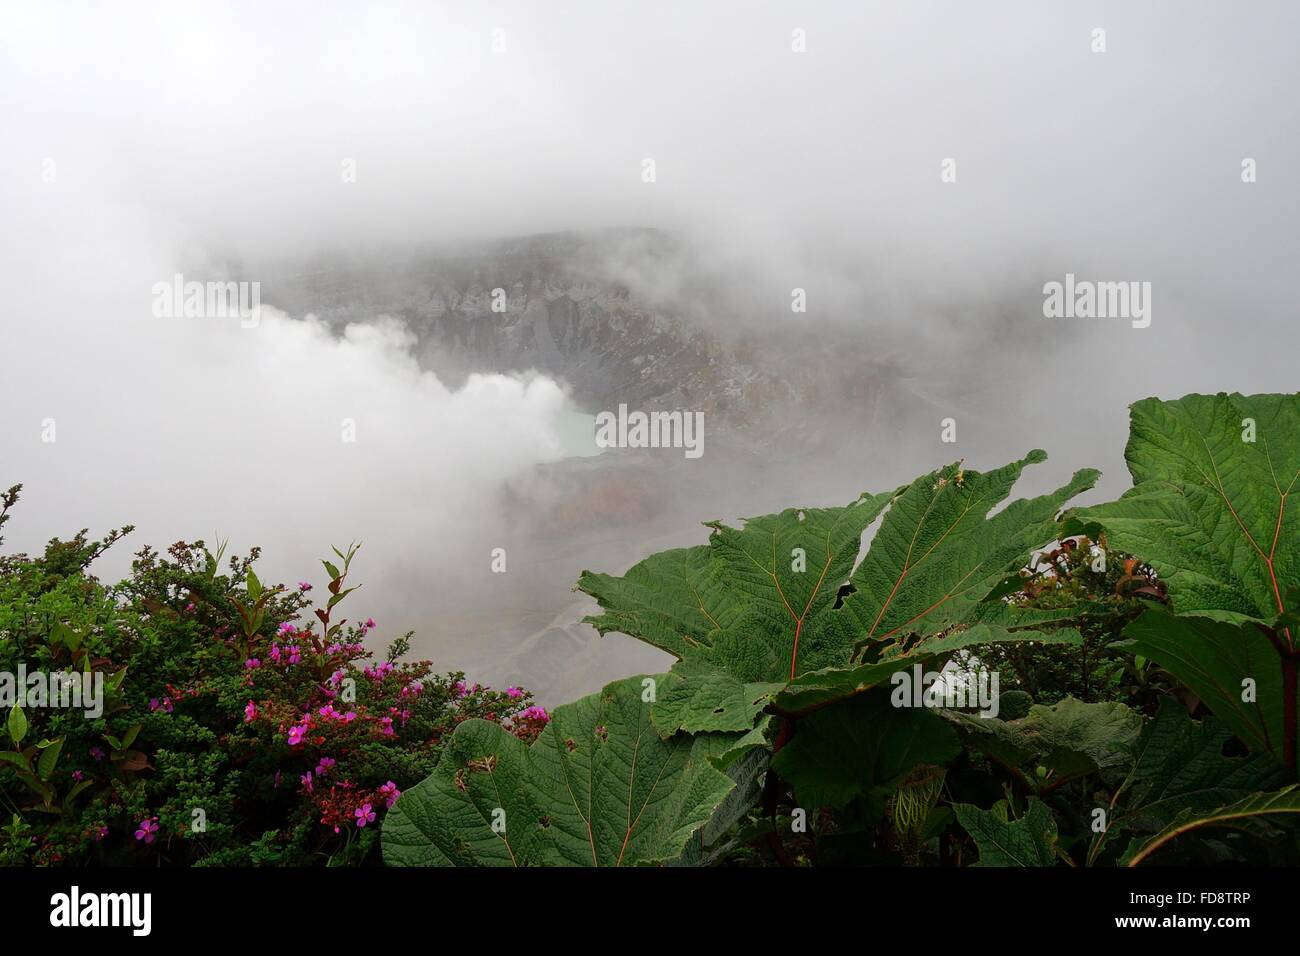 Clouds and steam over Poas Volcano crater, Costa Rica. - Stock Image